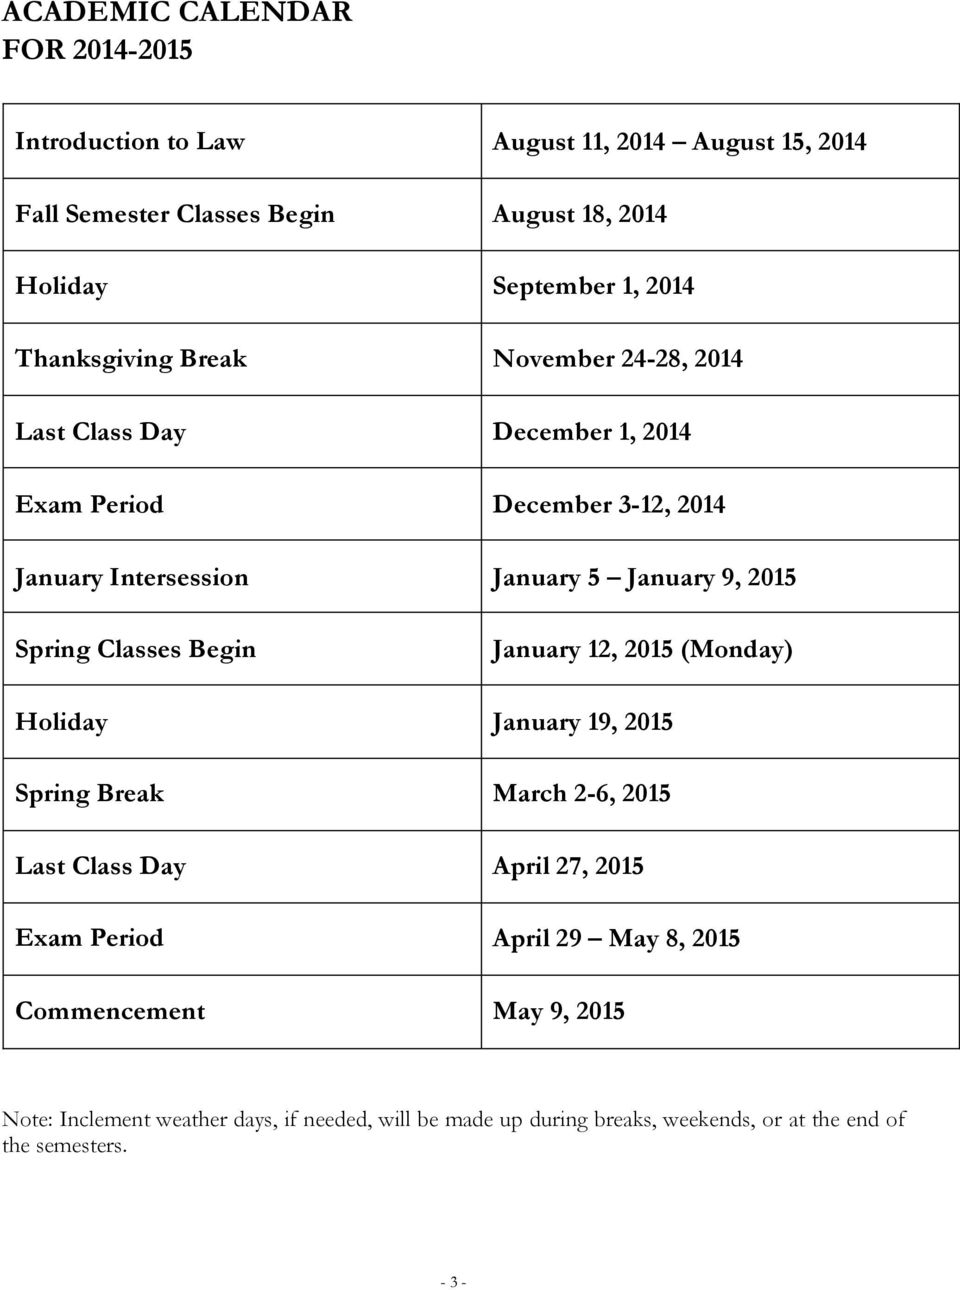 Spring Classes Begin January 12, 2015 (Monday) Holiday January 19, 2015 Spring Break March 2-6, 2015 Last Class Day April 27, 2015 Exam Period April 29